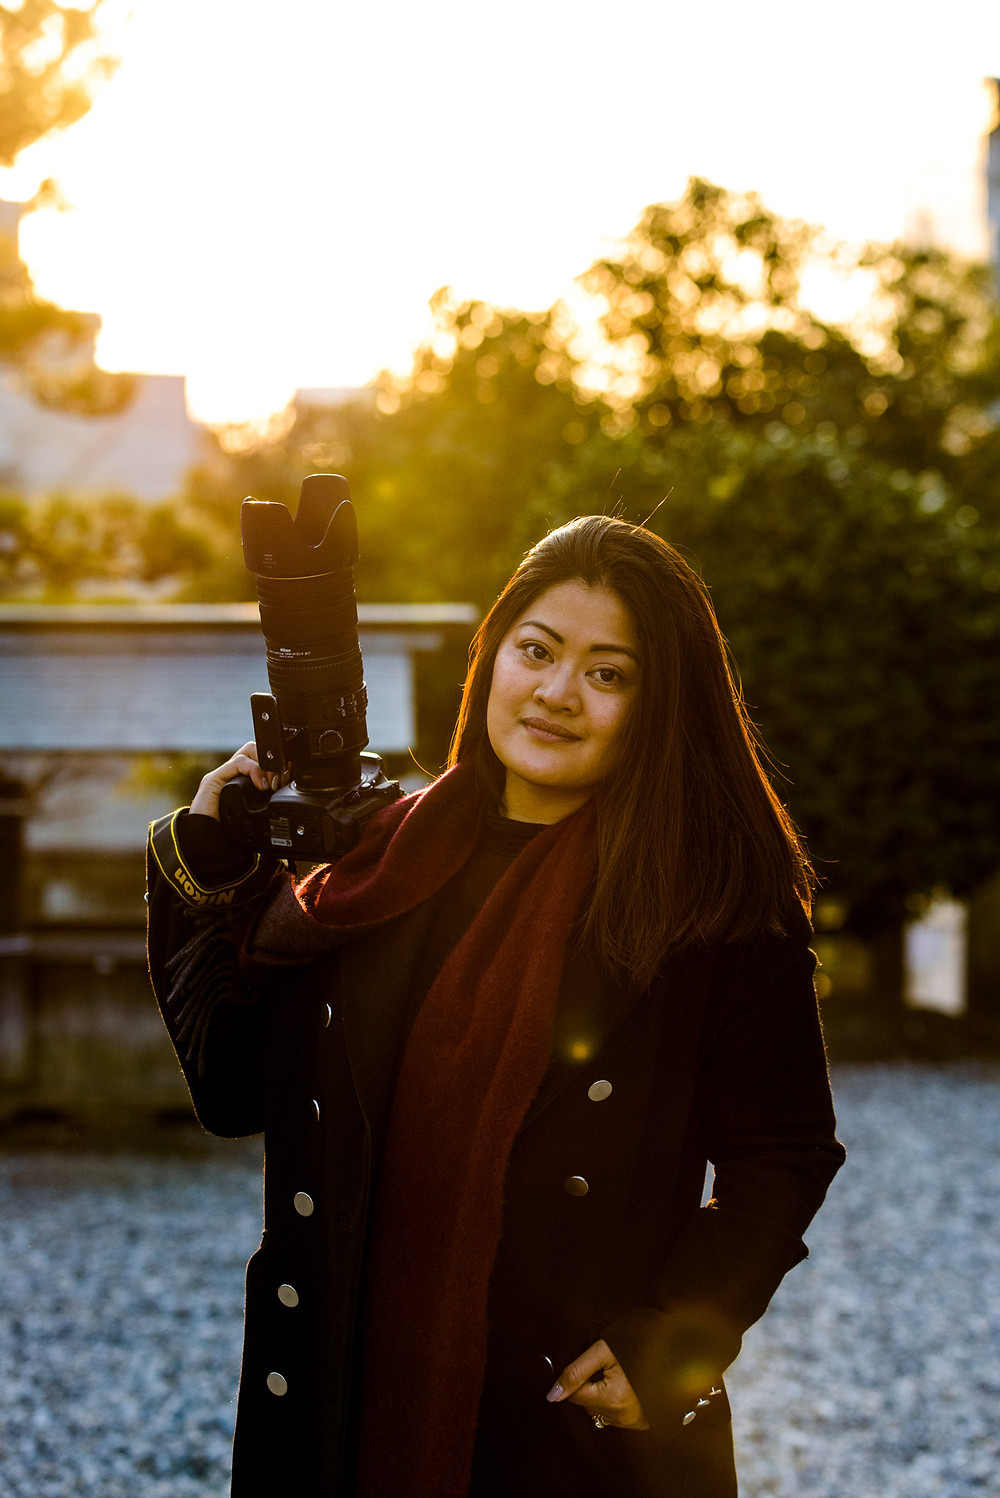 Anna Mae poses with her Camera in the sunset light